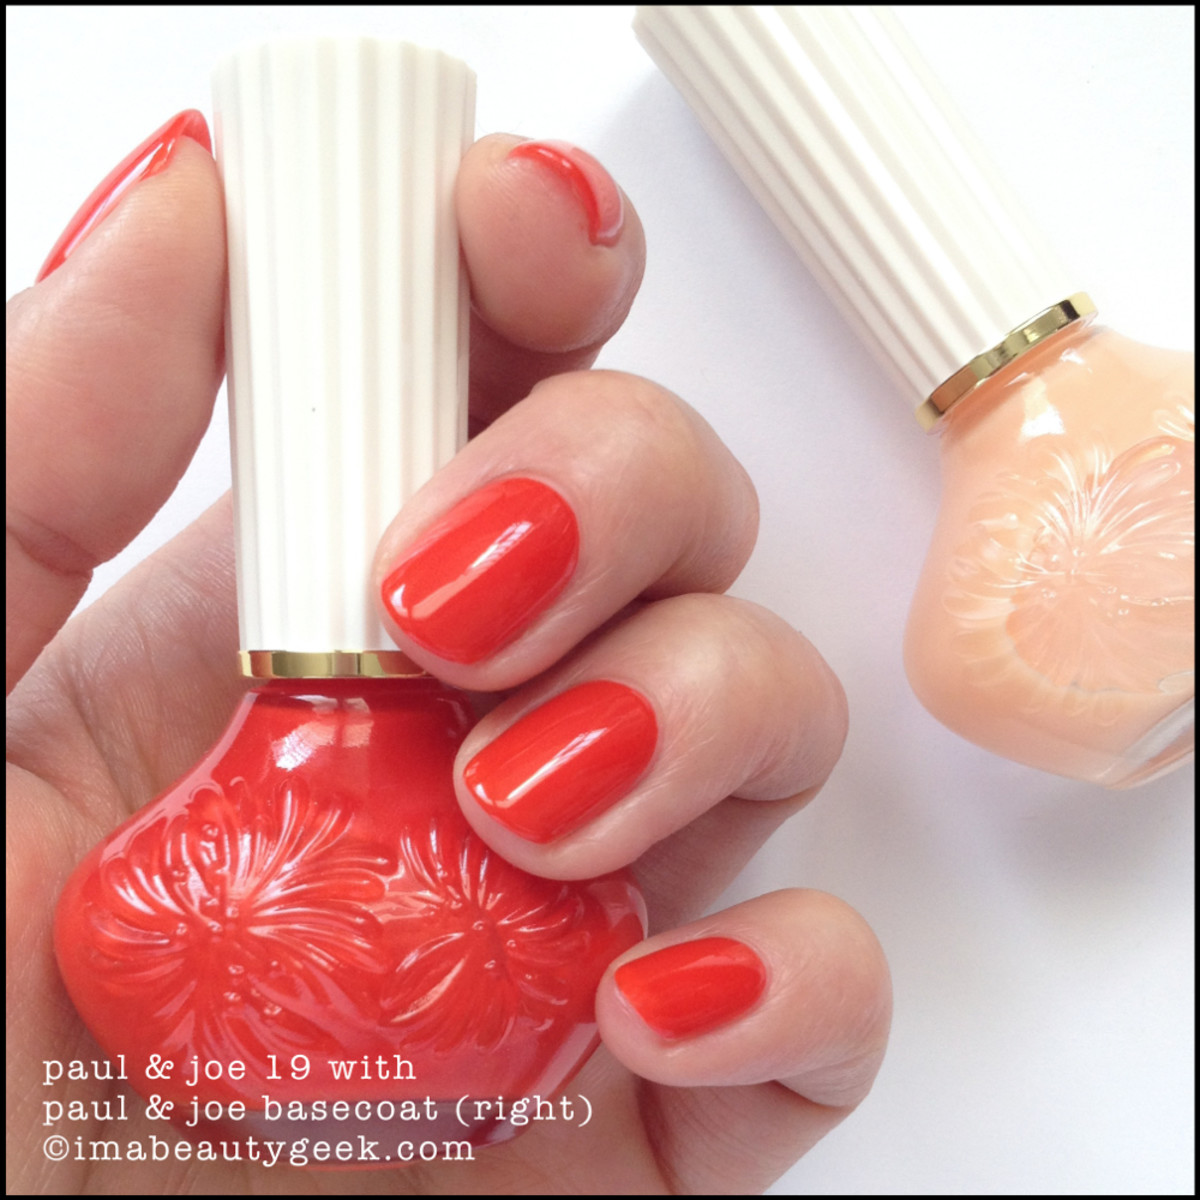 Paul & Joe Nail Polish 19 Paprika